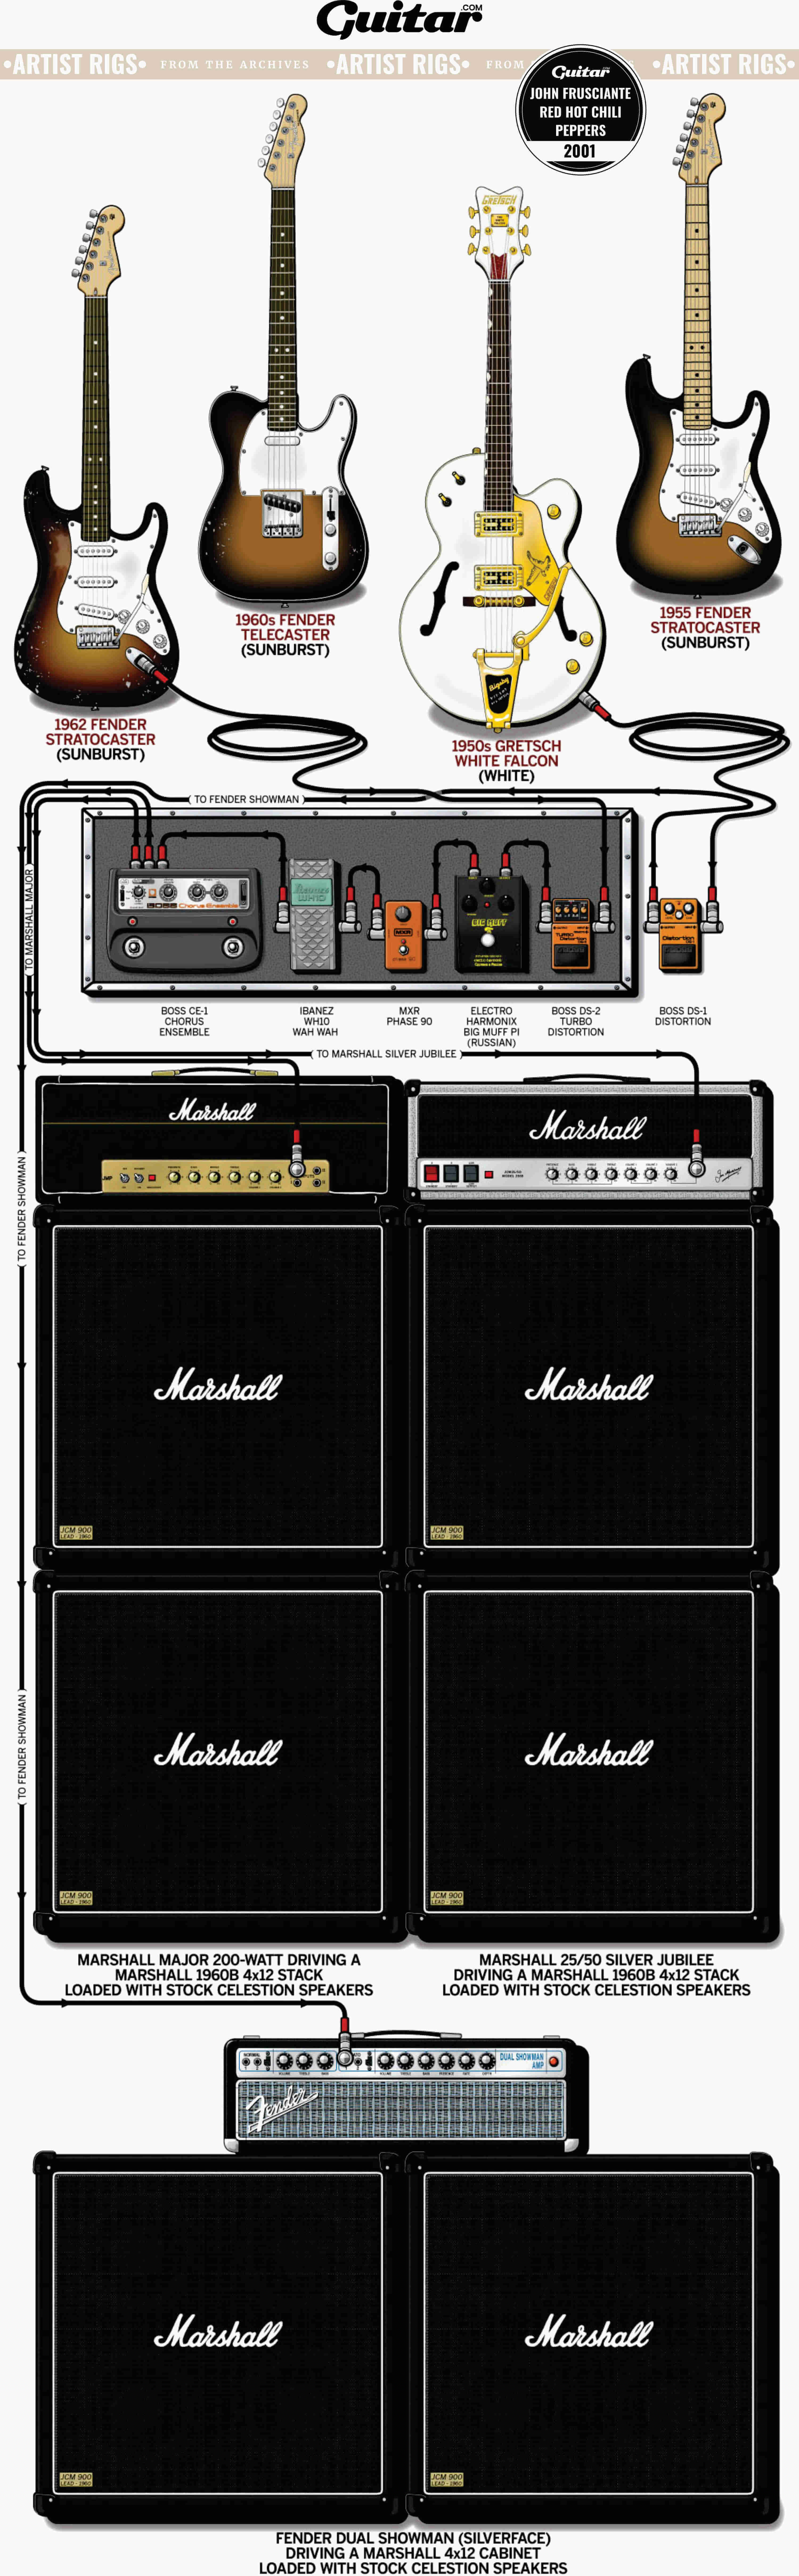 Rig Diagram: John Frusciante, Red Hot Chili Peppers (2001)